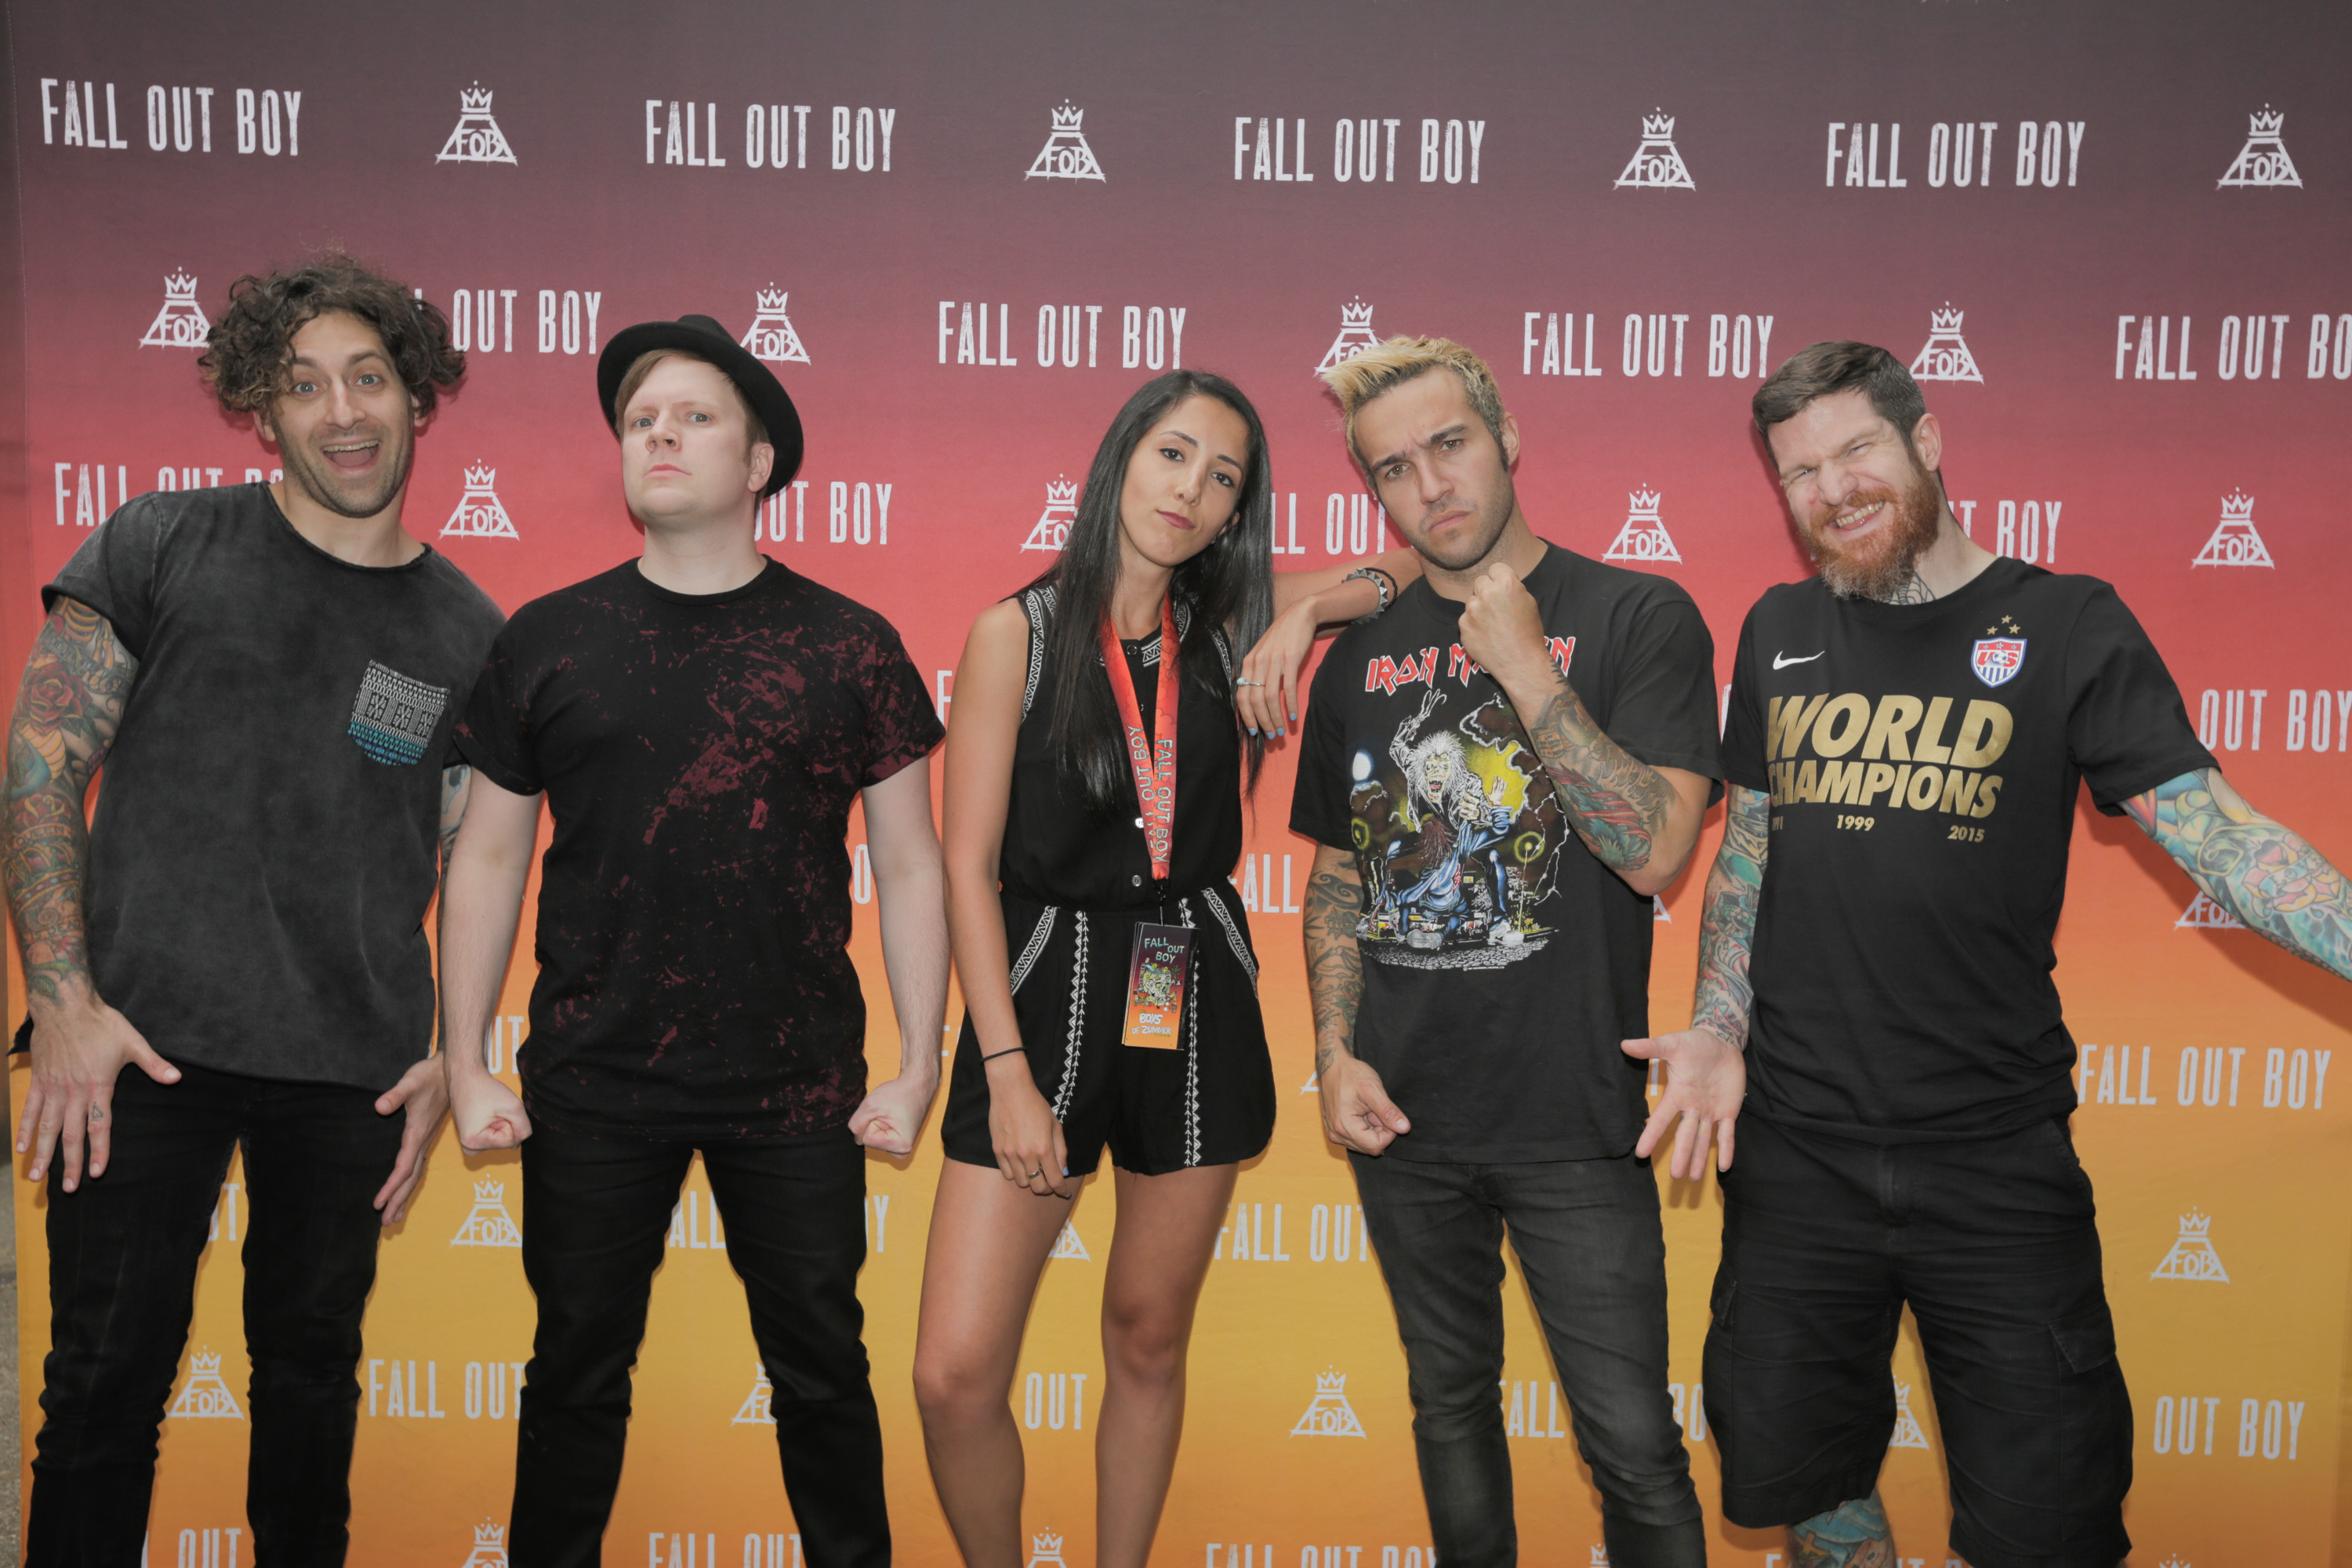 Fall out boy tickets available aug 4 2015 0 comments download original m4hsunfo